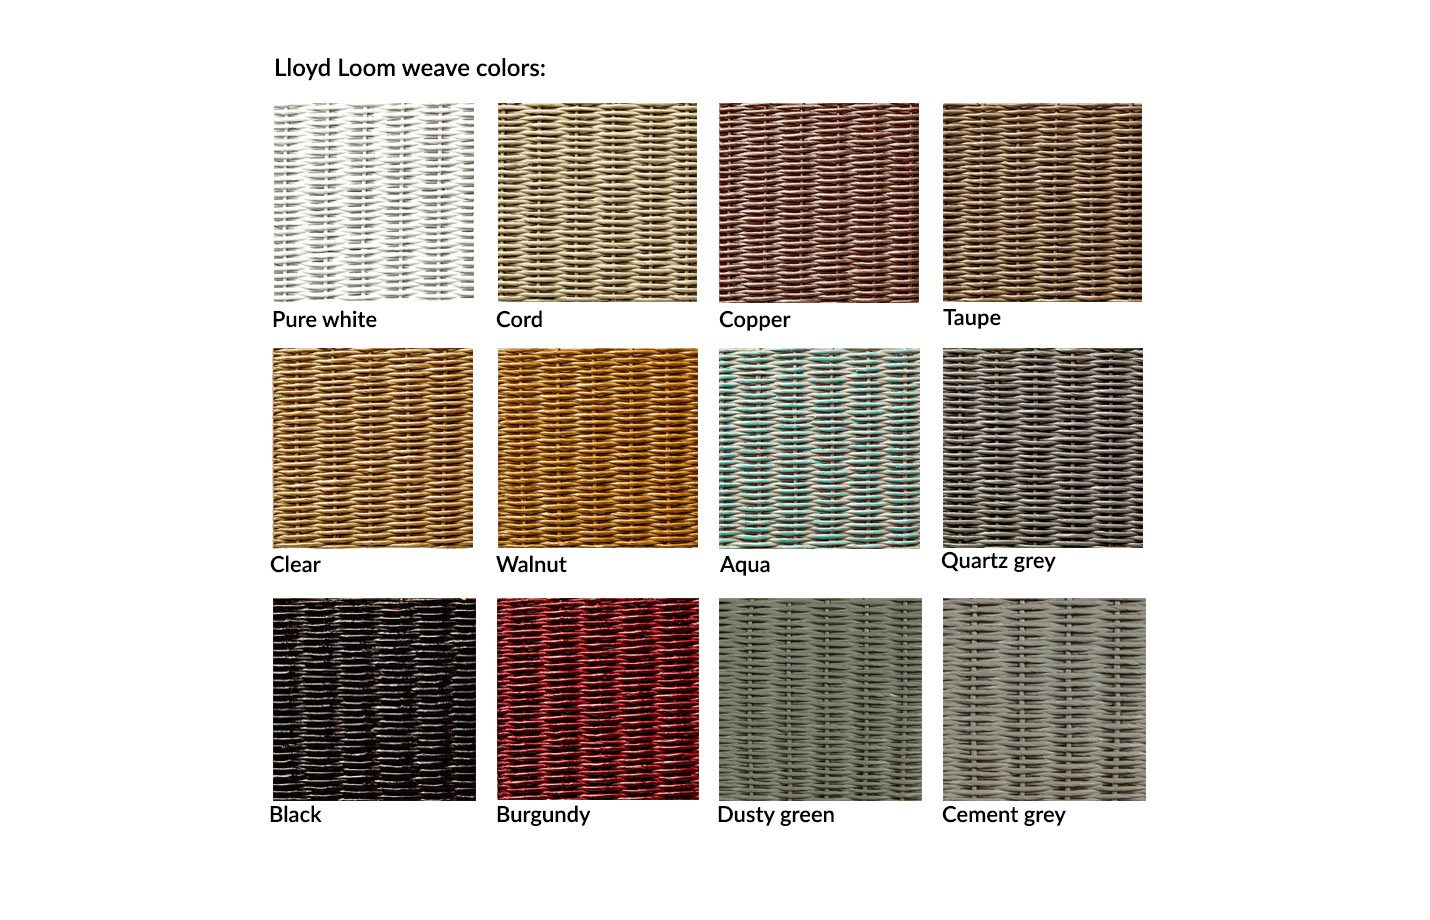 VS-Furniture-Lloyd-Loom-weave-swatch-color